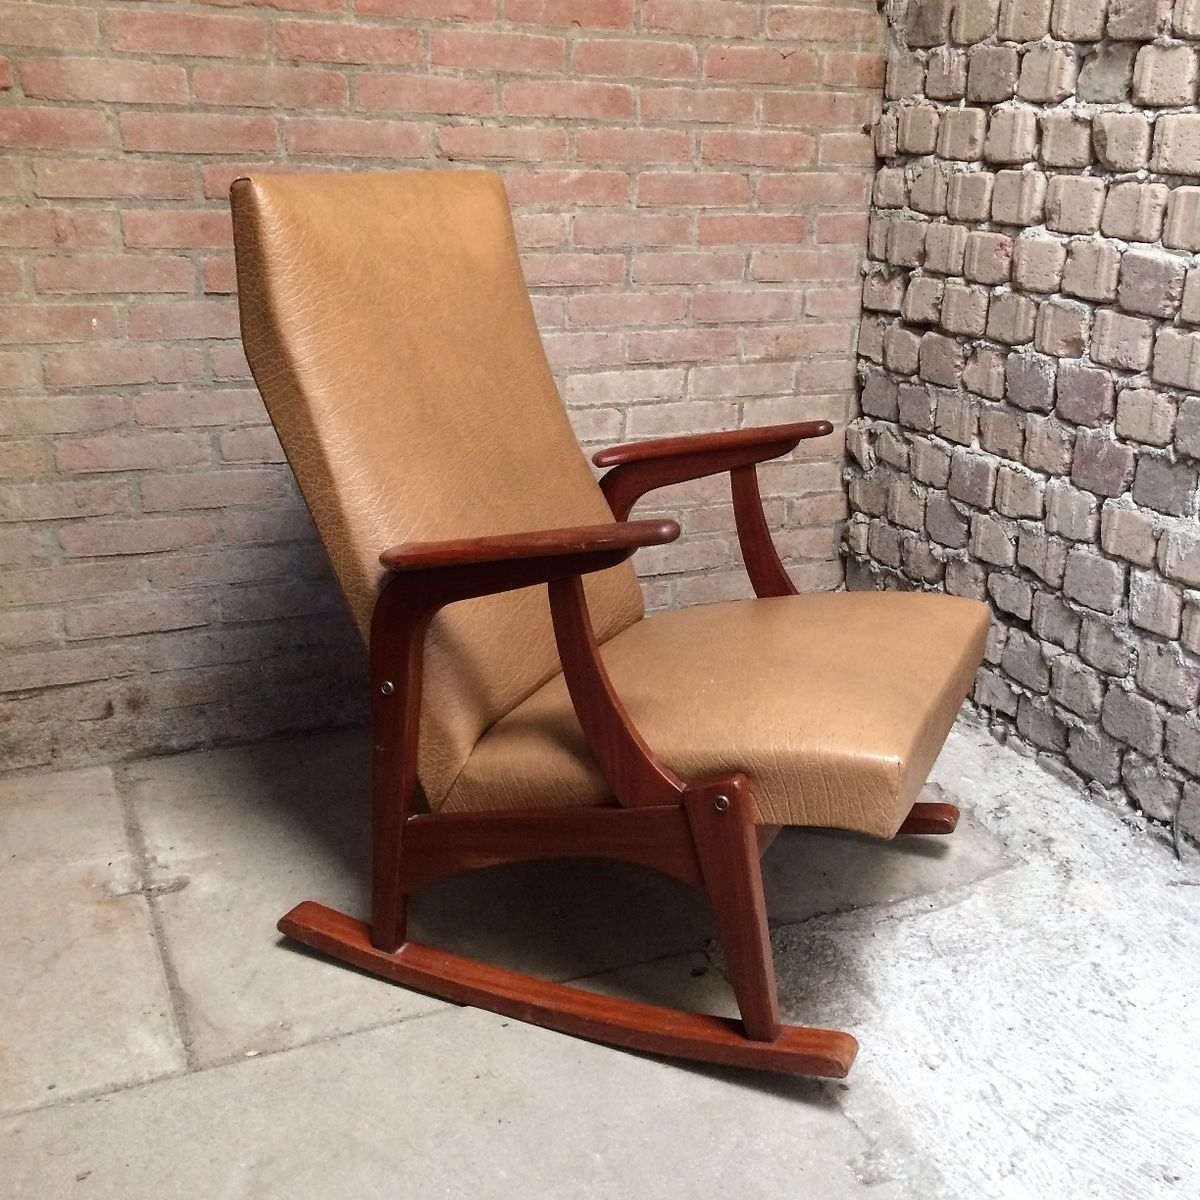 Vintage Rocking Chair, 1960s For Sale At Pamono With Regard To Most Current Retro Rocking Chairs (View 18 of 20)